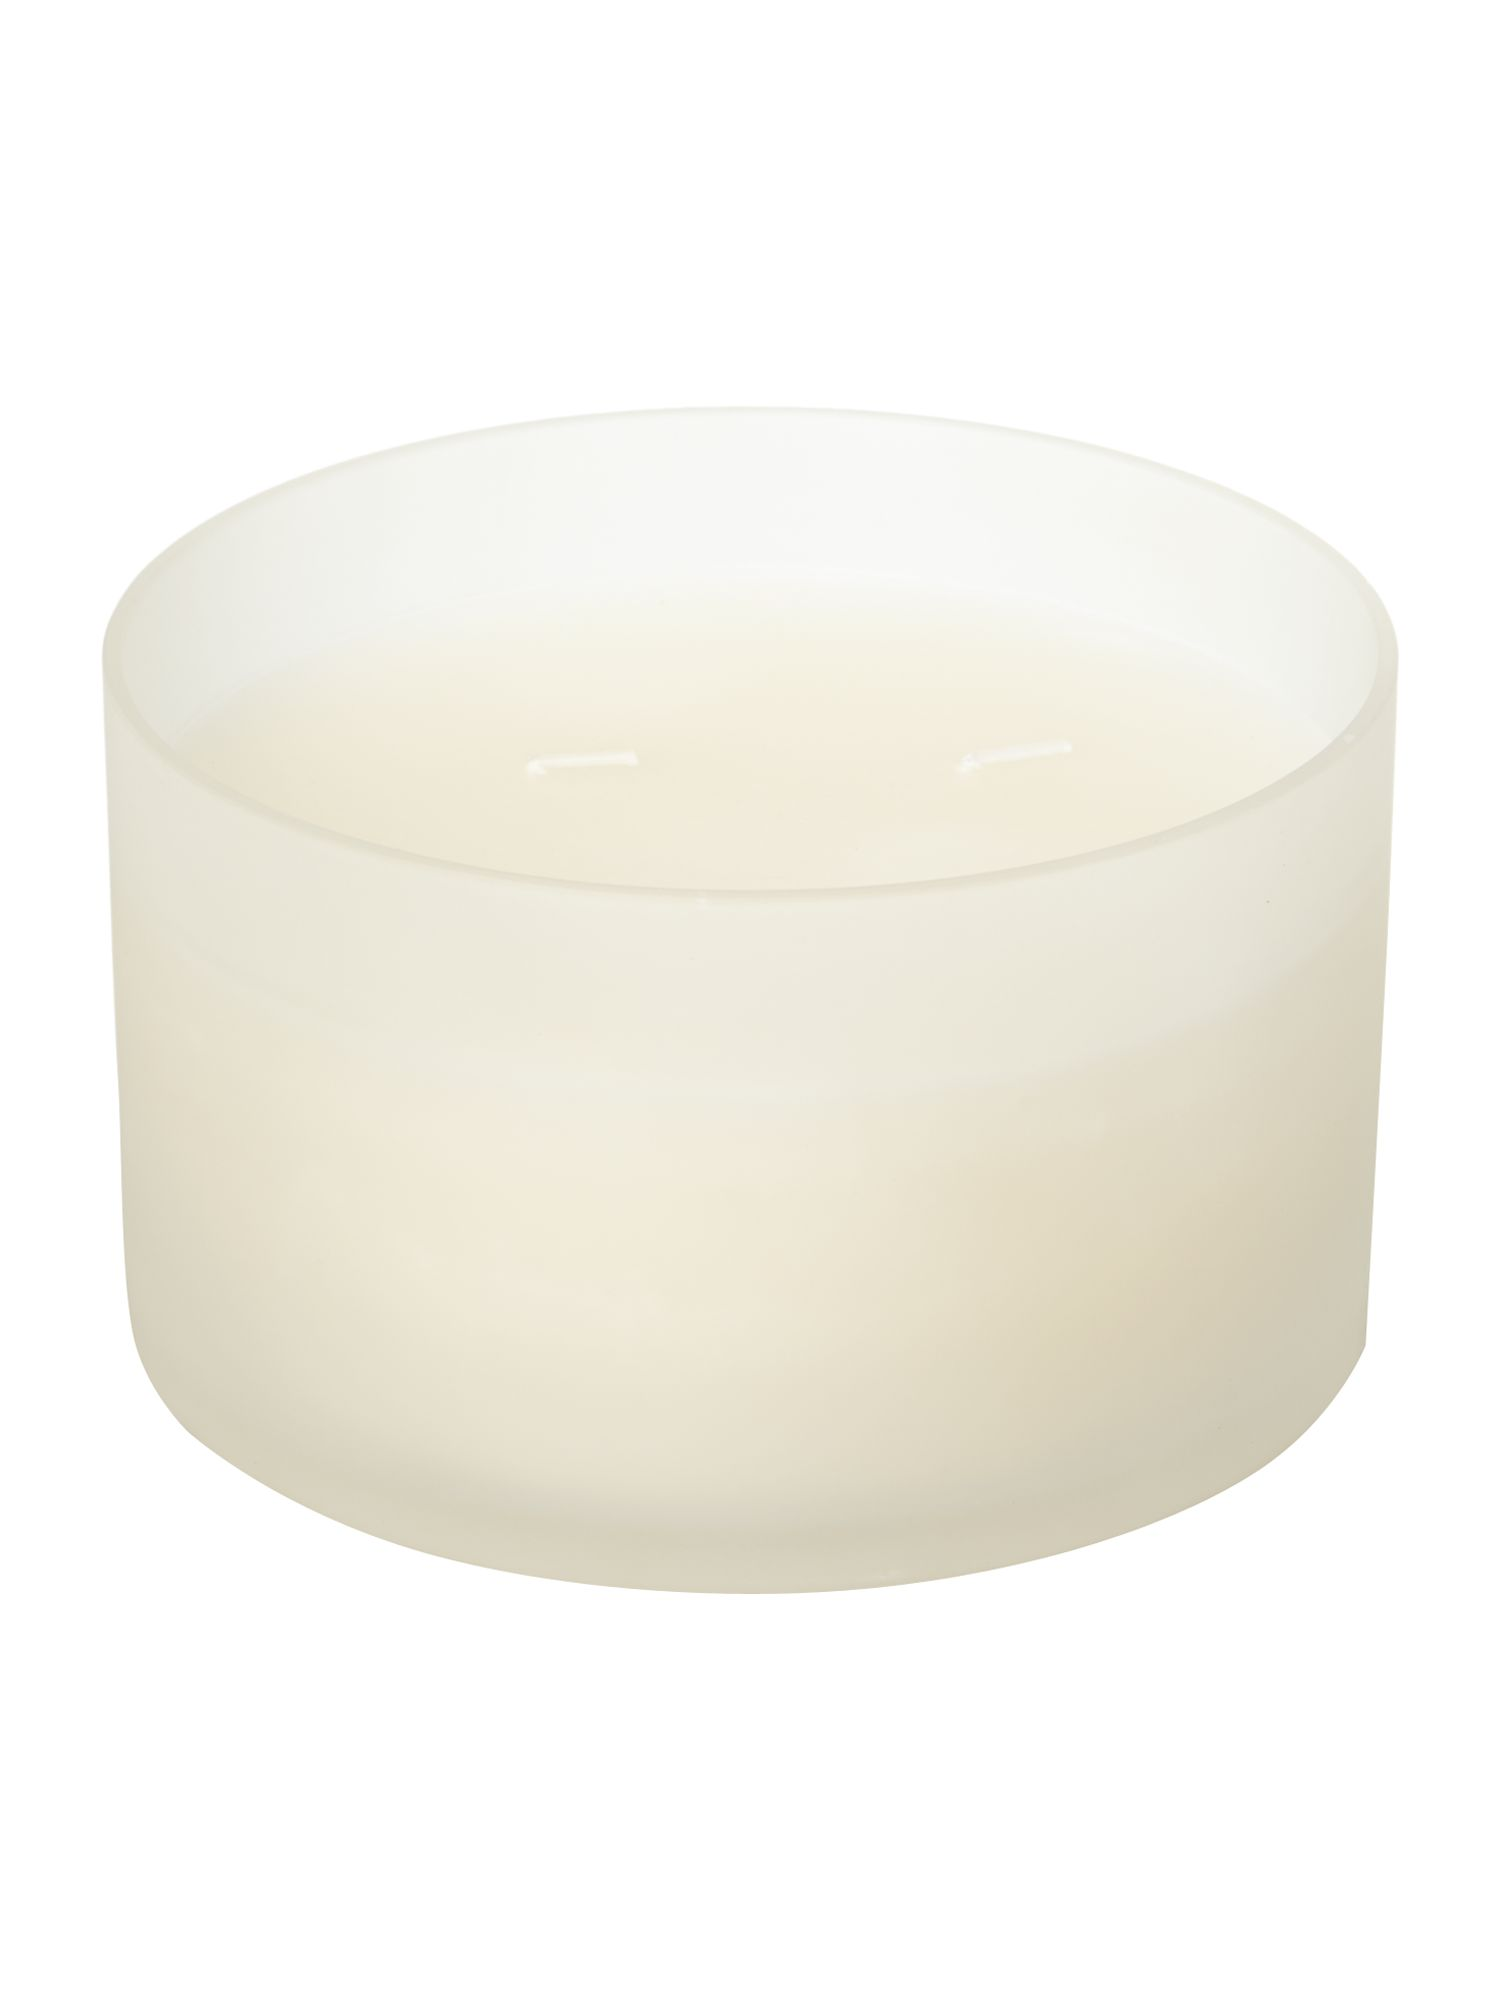 Calm large boxed candle